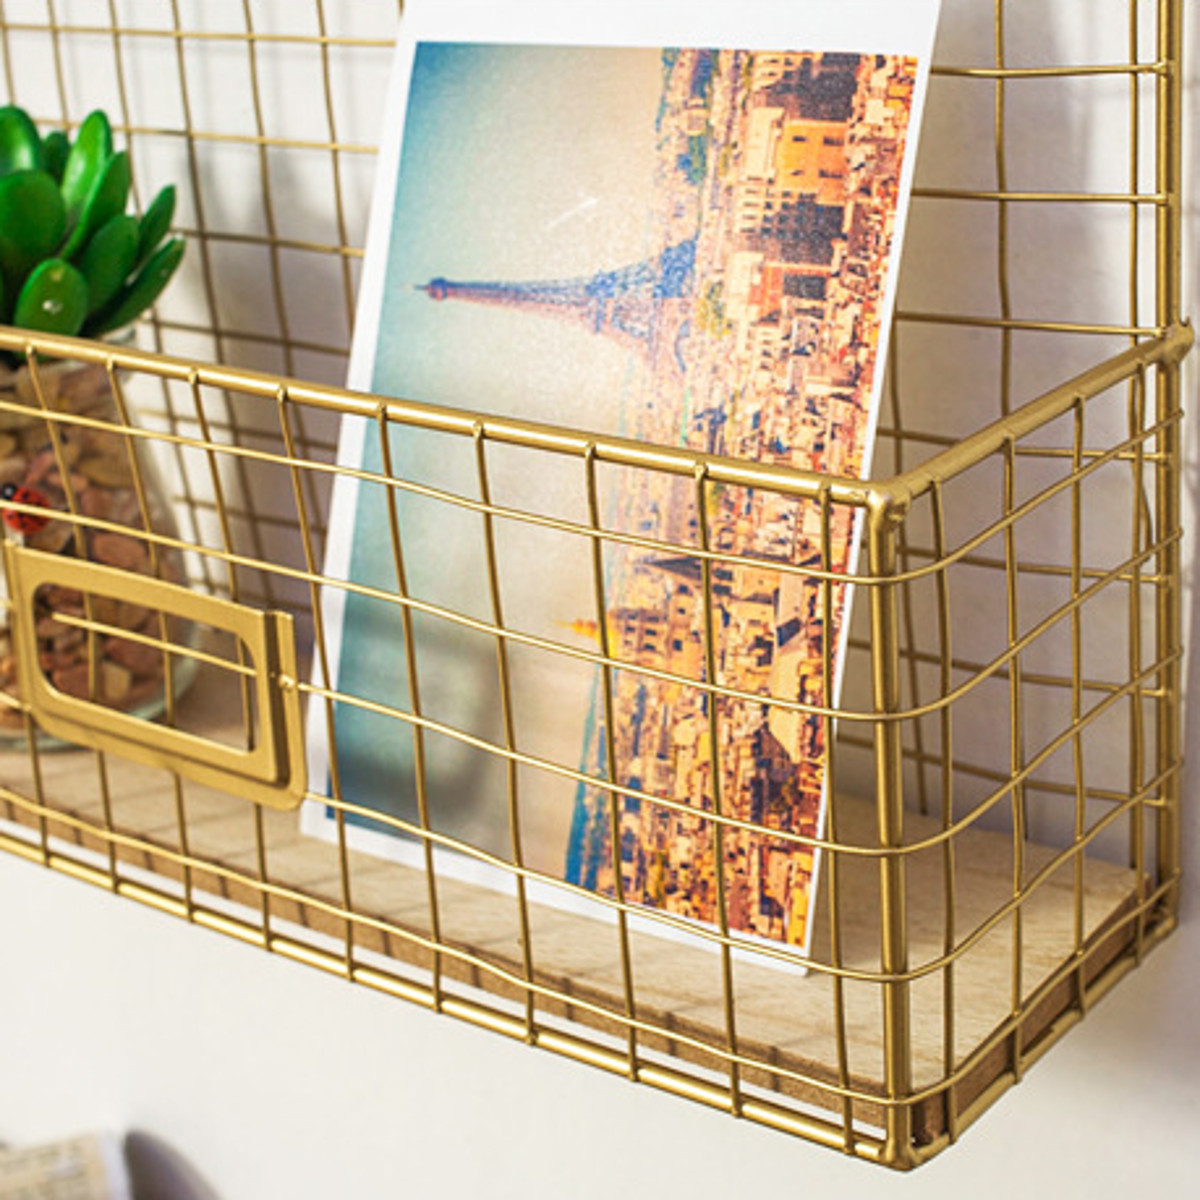 Gold Wire Rack Metal Photo Modern Wall Hanging Shelf Storage Organizer Baskets w/ LED